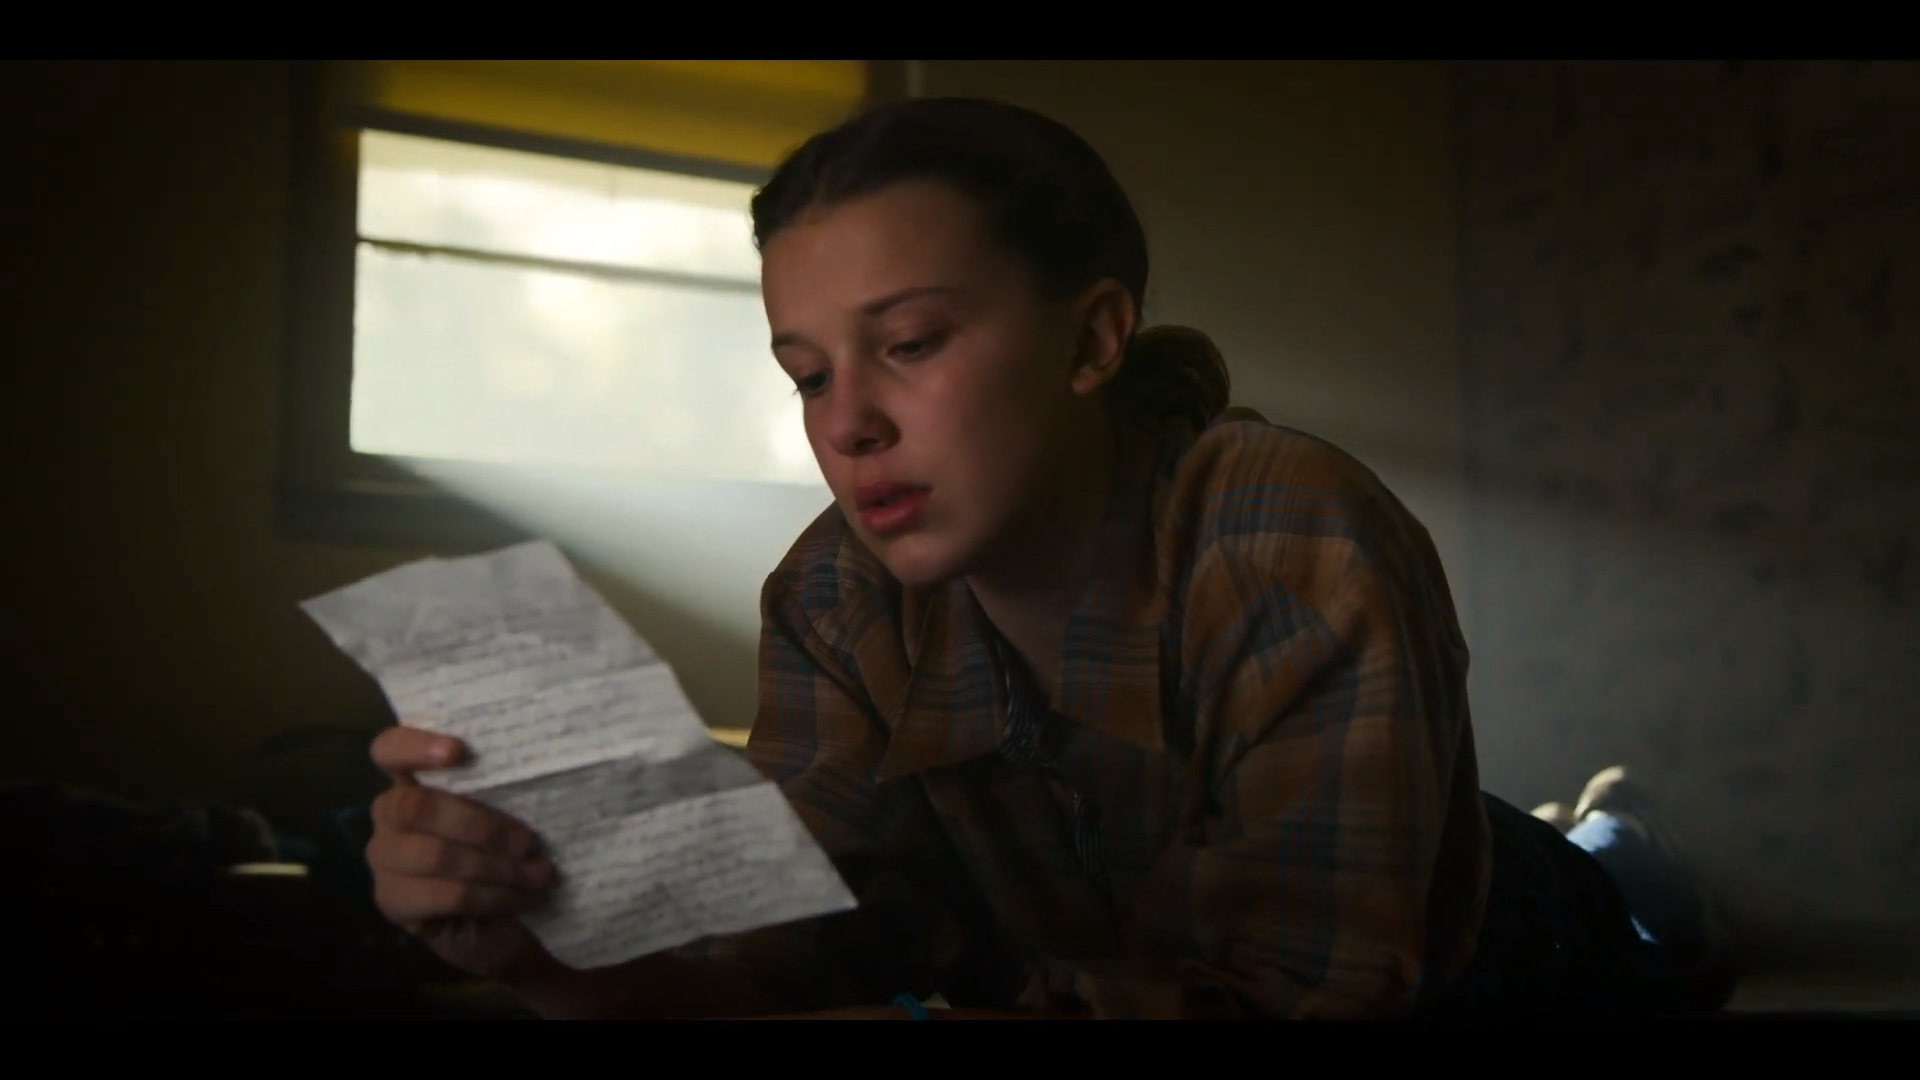 Eleven lendo a carta de Hopper, Stranger Things, 3ª temporada